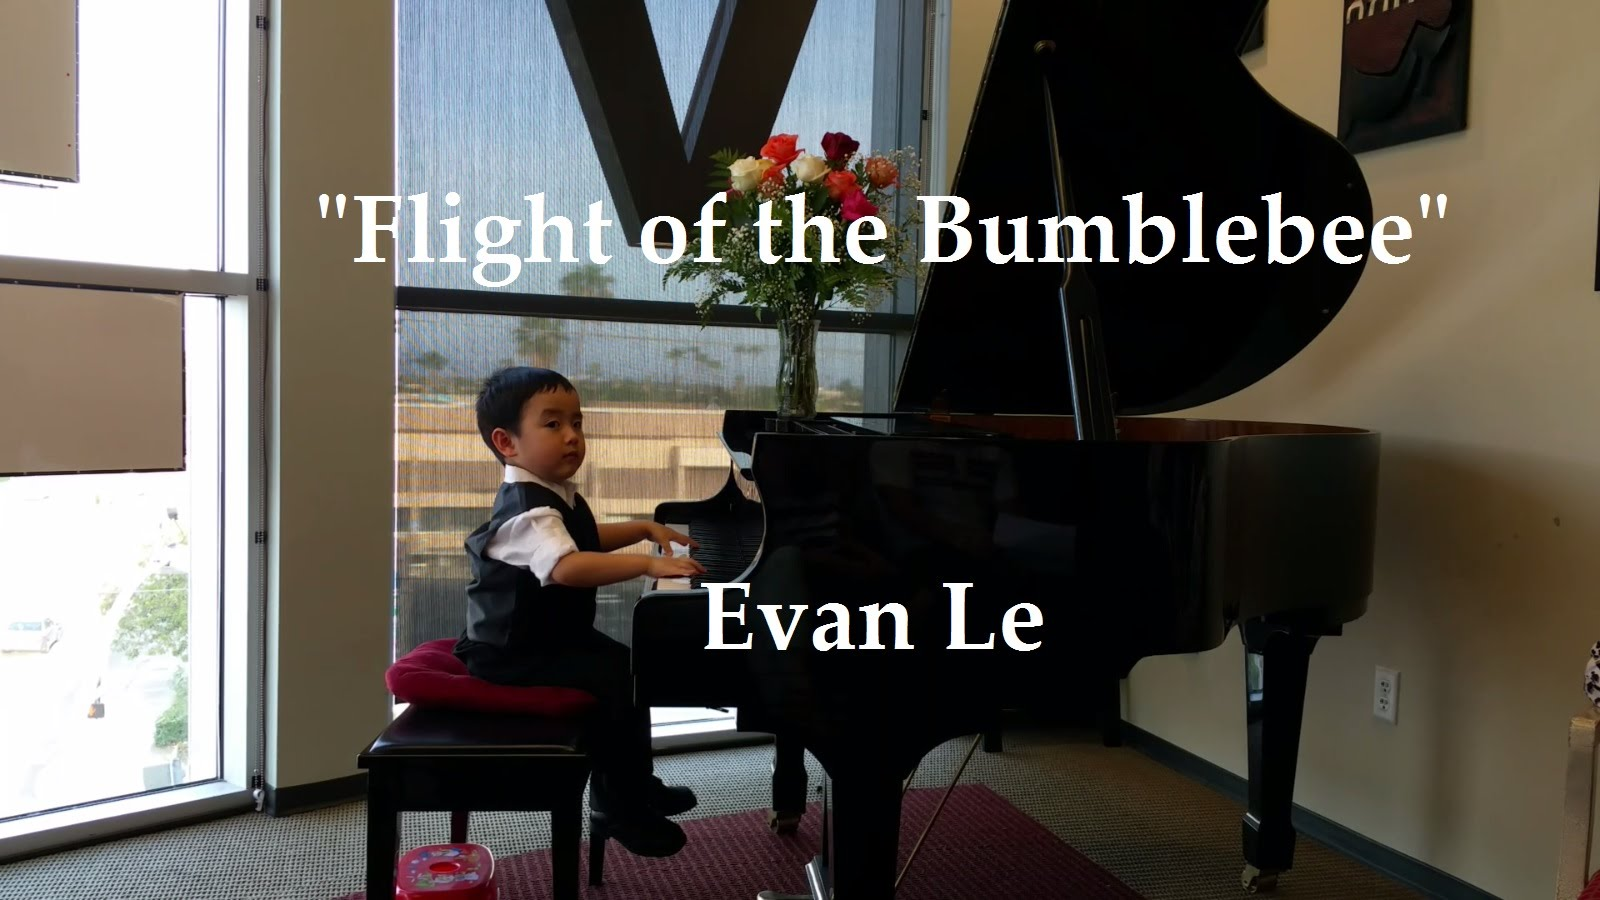 Evan Le – Flight of the Bumblebee